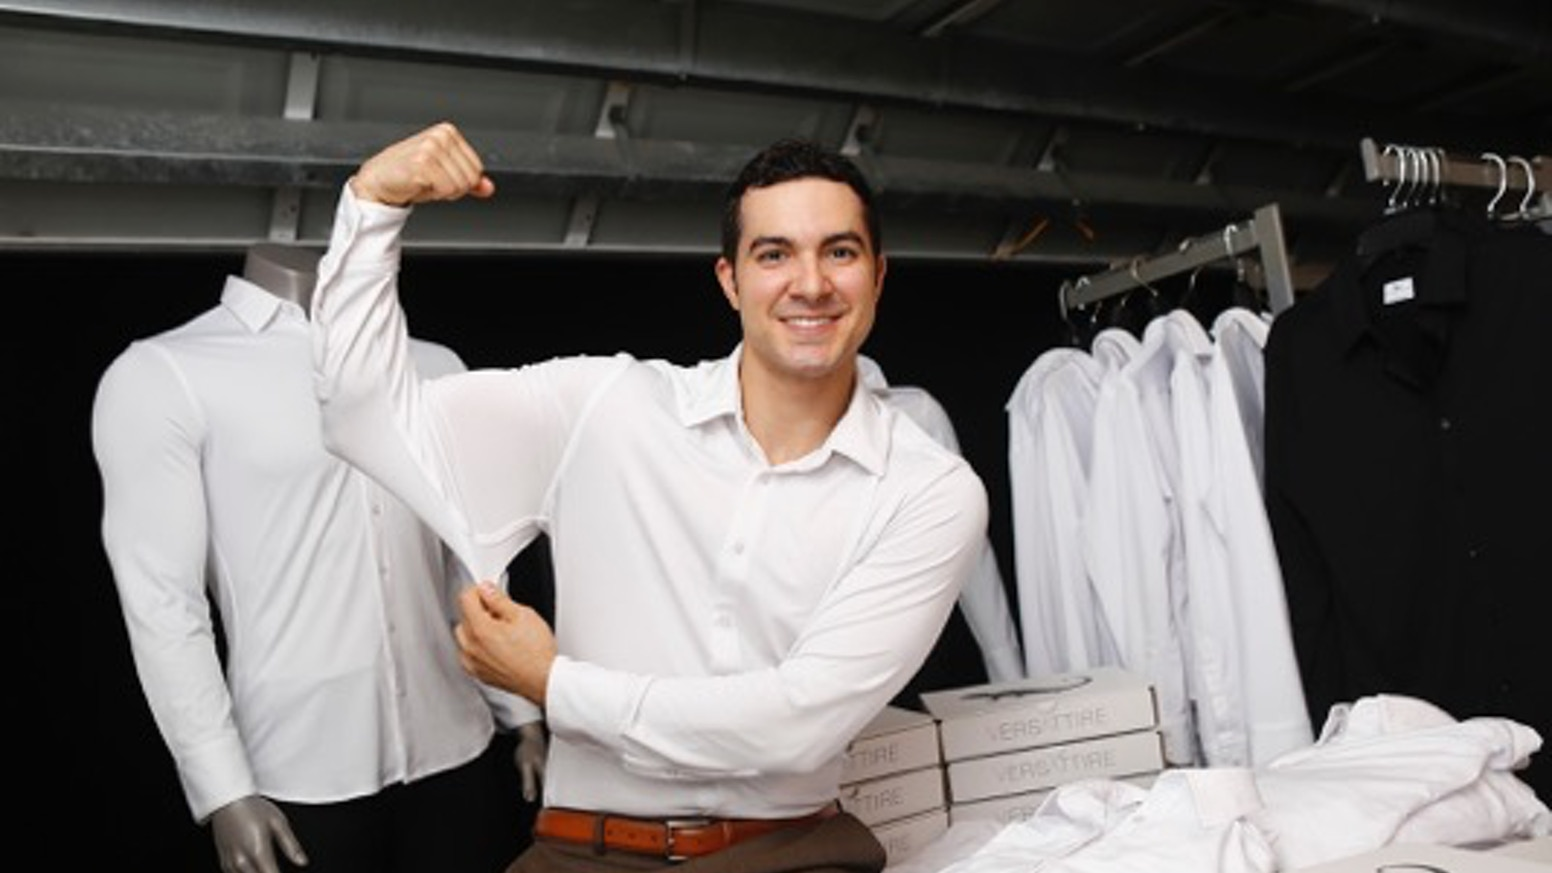 The first mainstream, versatile dress shirt that always stays tucked in, has an ultra 4-way stretch, and wicks away sweat.